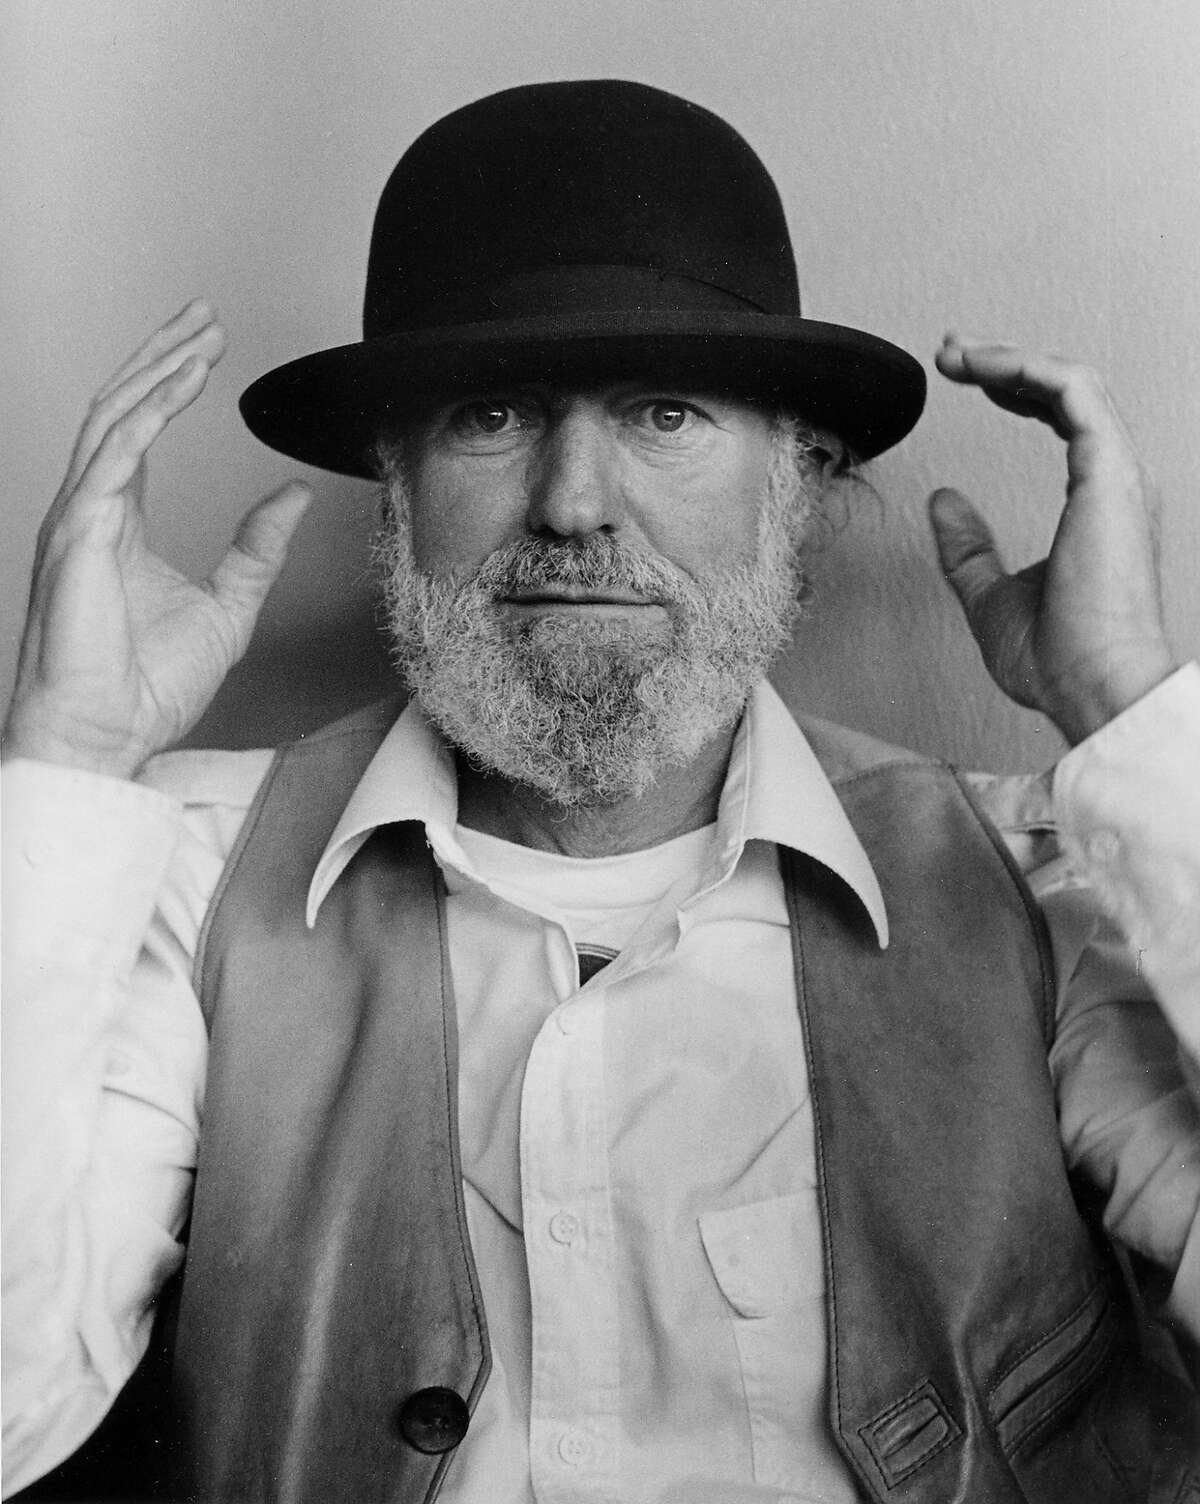 Lawrence Ferlinghetti was the subject of a 2011 Felver film.